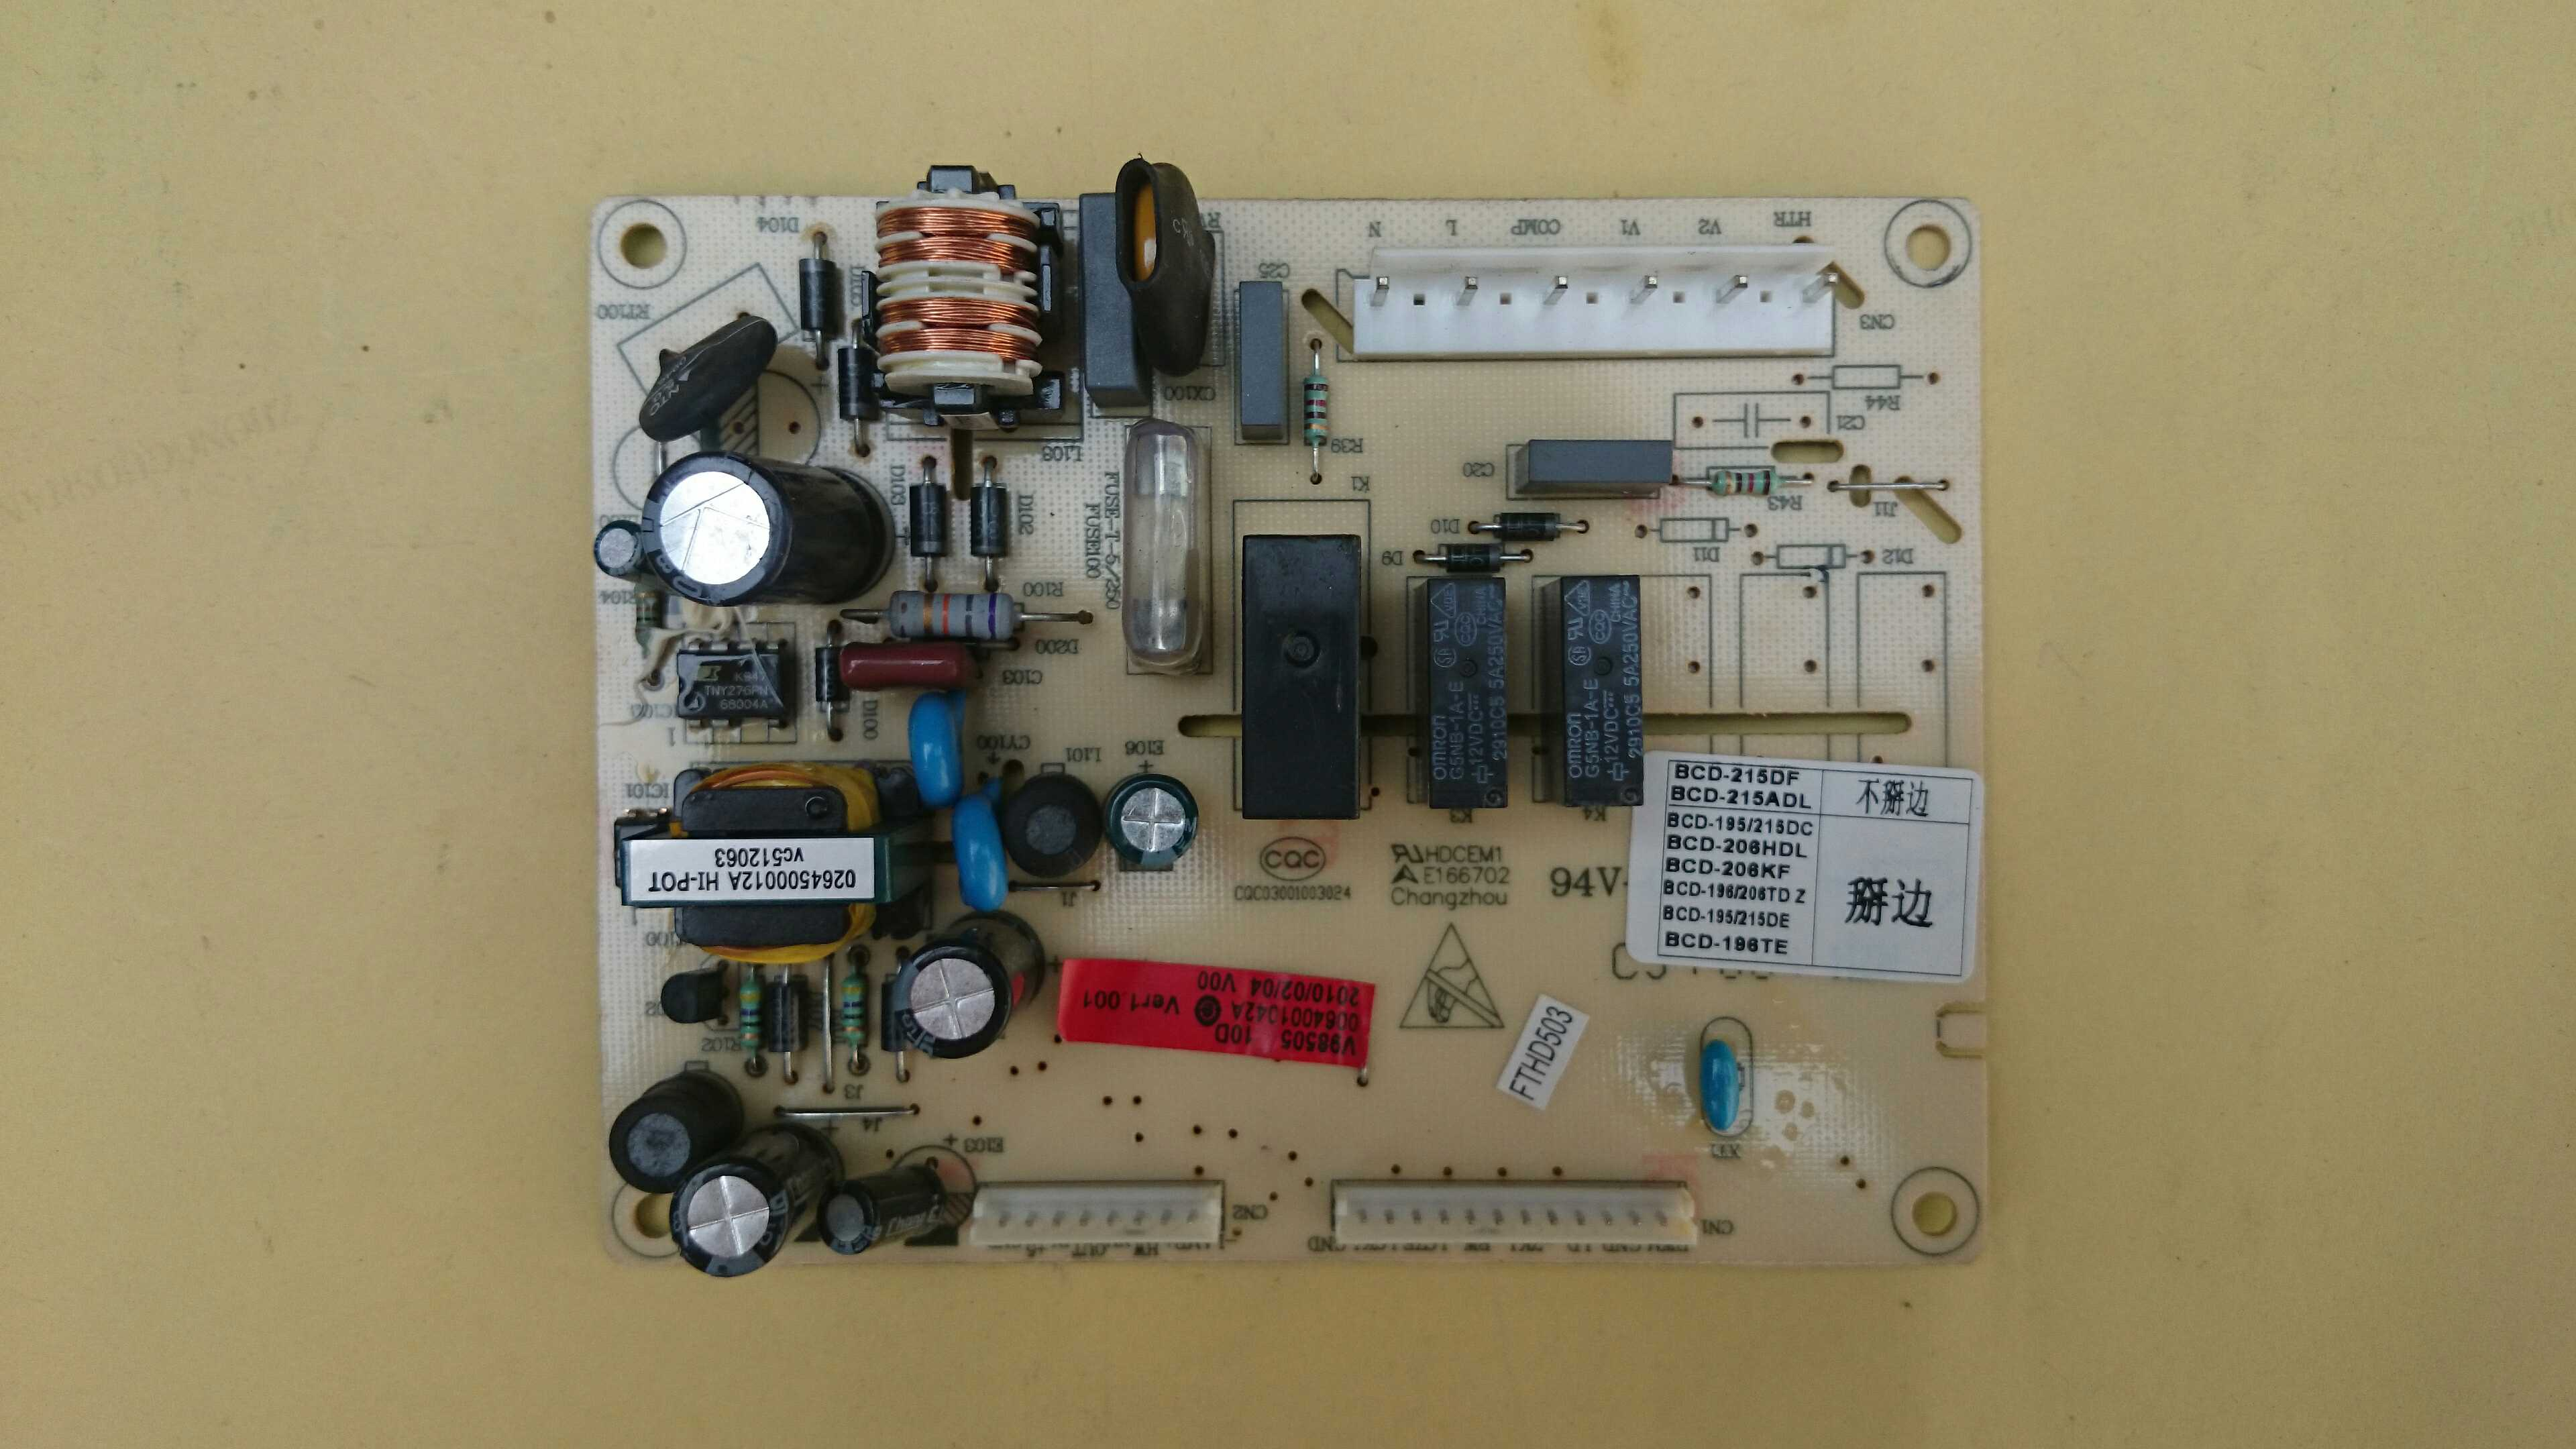 Haier refrigerator power supply board control board 0064001042A power supply board suitable for Haier refrigerator BCD-215DE haier refrigerator power board master control board inverter board 0064000489 bcd 163e b 173 e etc